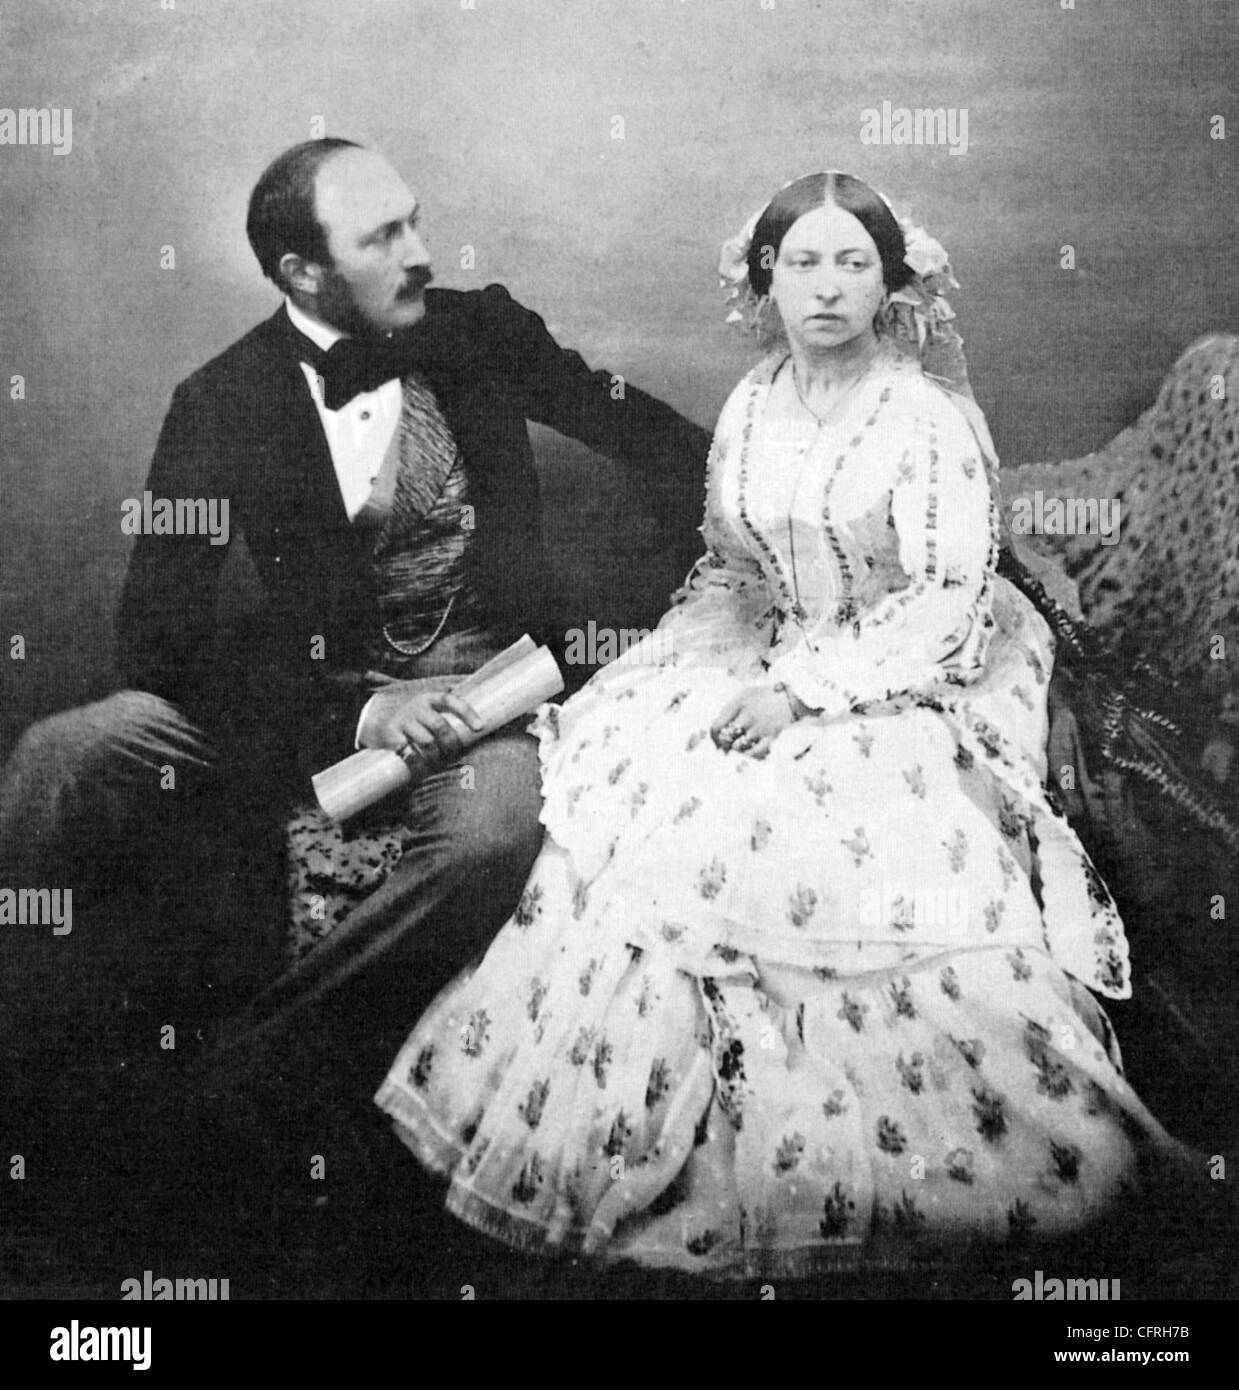 queen victoria and prince albert in 1854 when both were 35 years old stock photo 44159007 alamy. Black Bedroom Furniture Sets. Home Design Ideas